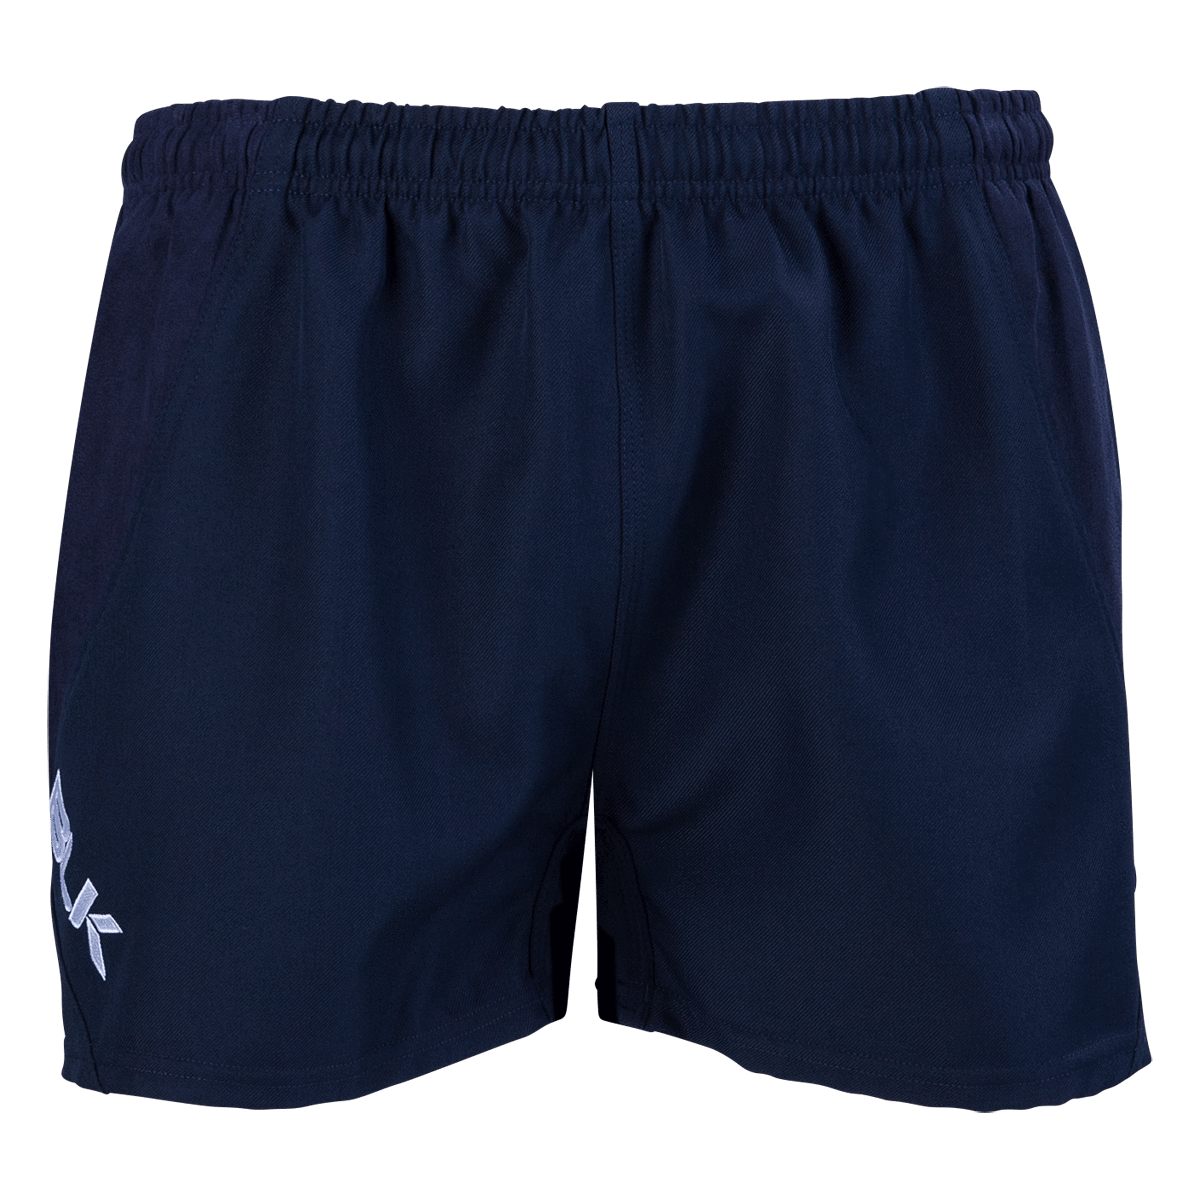 BLK Navy T2 Rugby Shorts